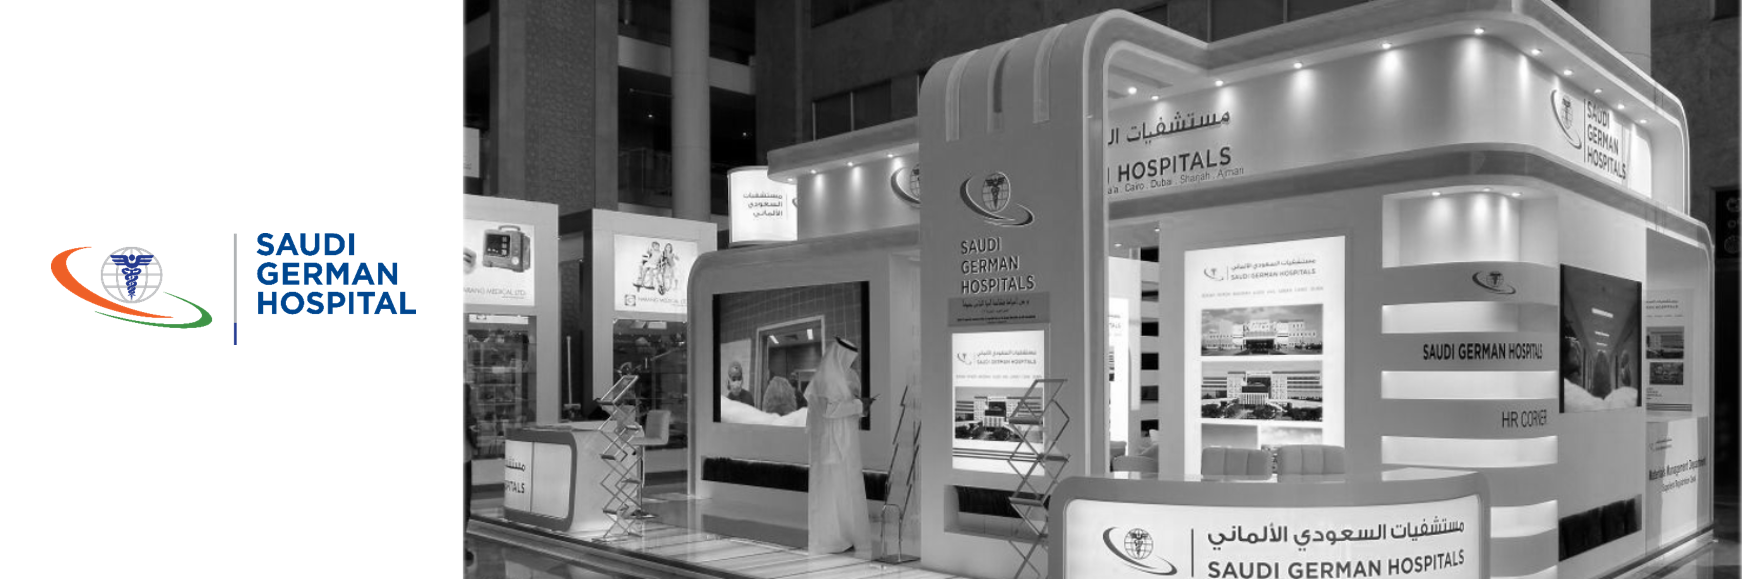 Saudi German Hospital embeds, insights-driven personalized customer journey across all touchpoints